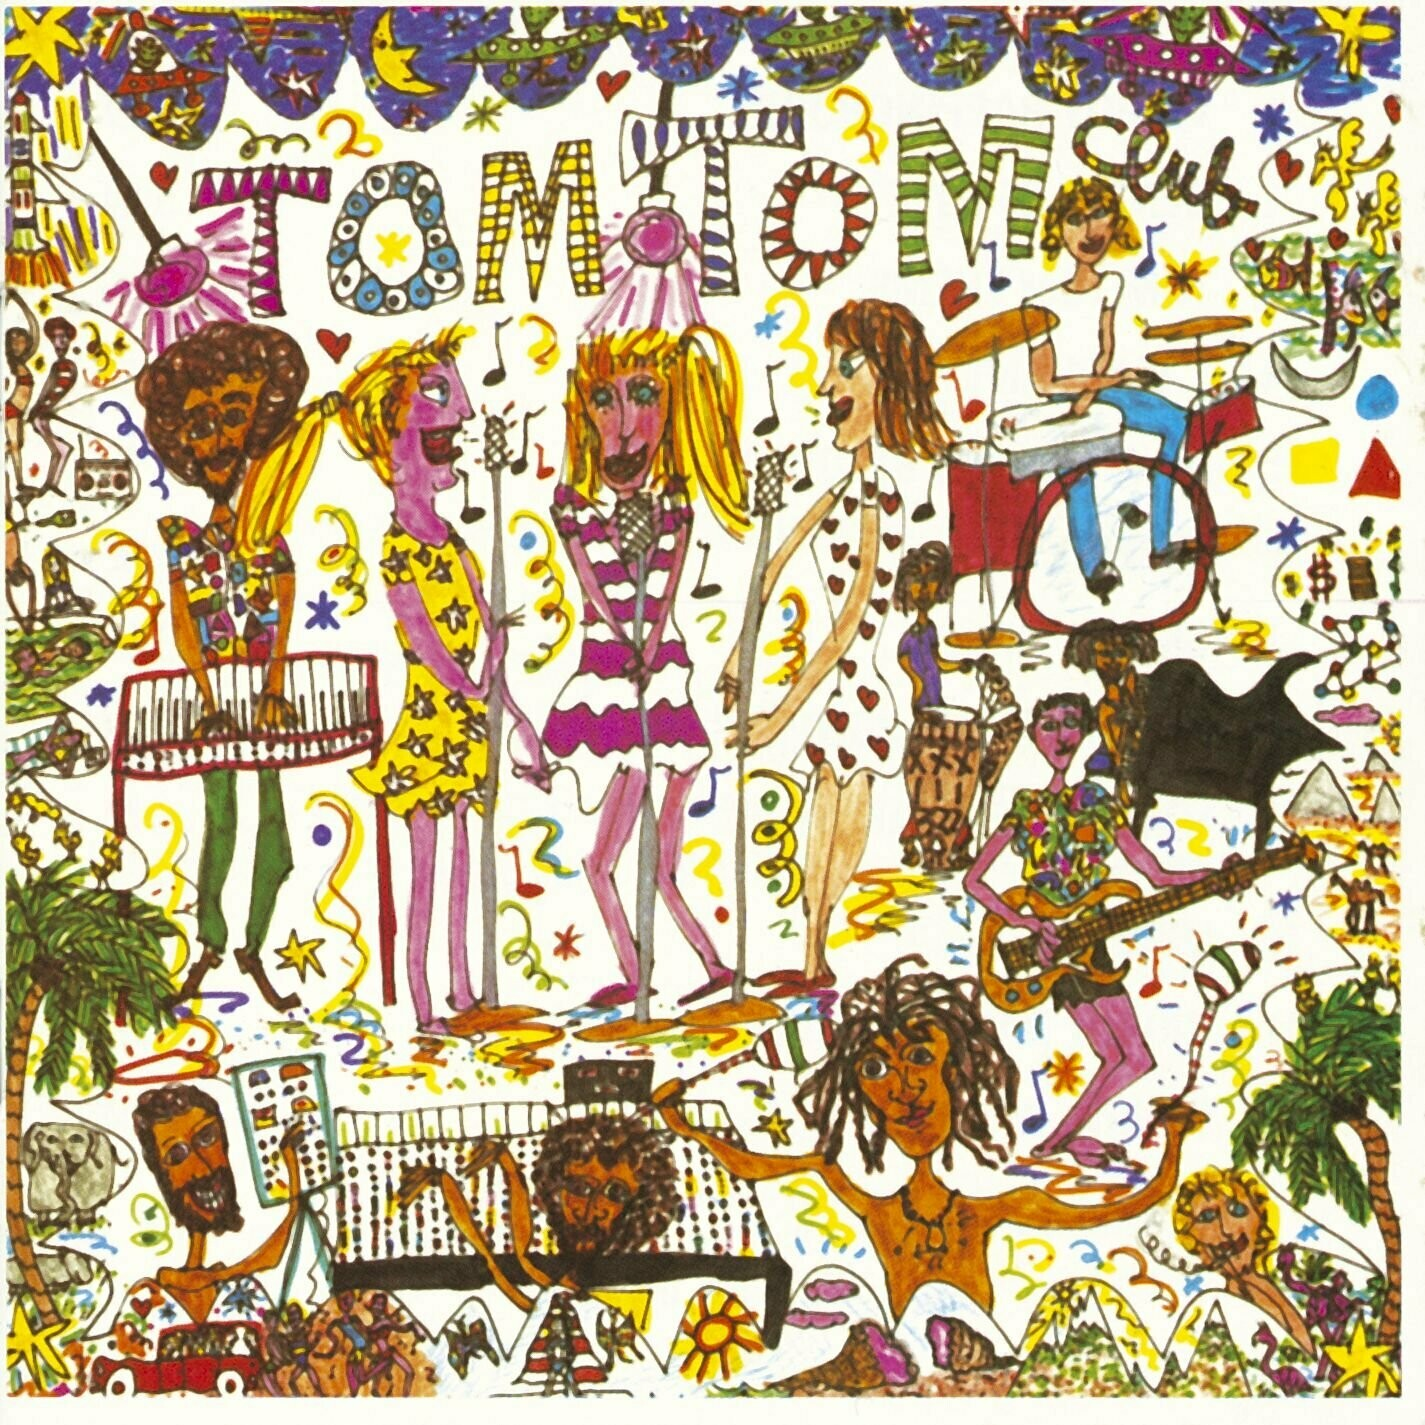 "Tom Tom Club ""Tom Tom Club"" (Tropical Yellow & Red Vinyl!)"